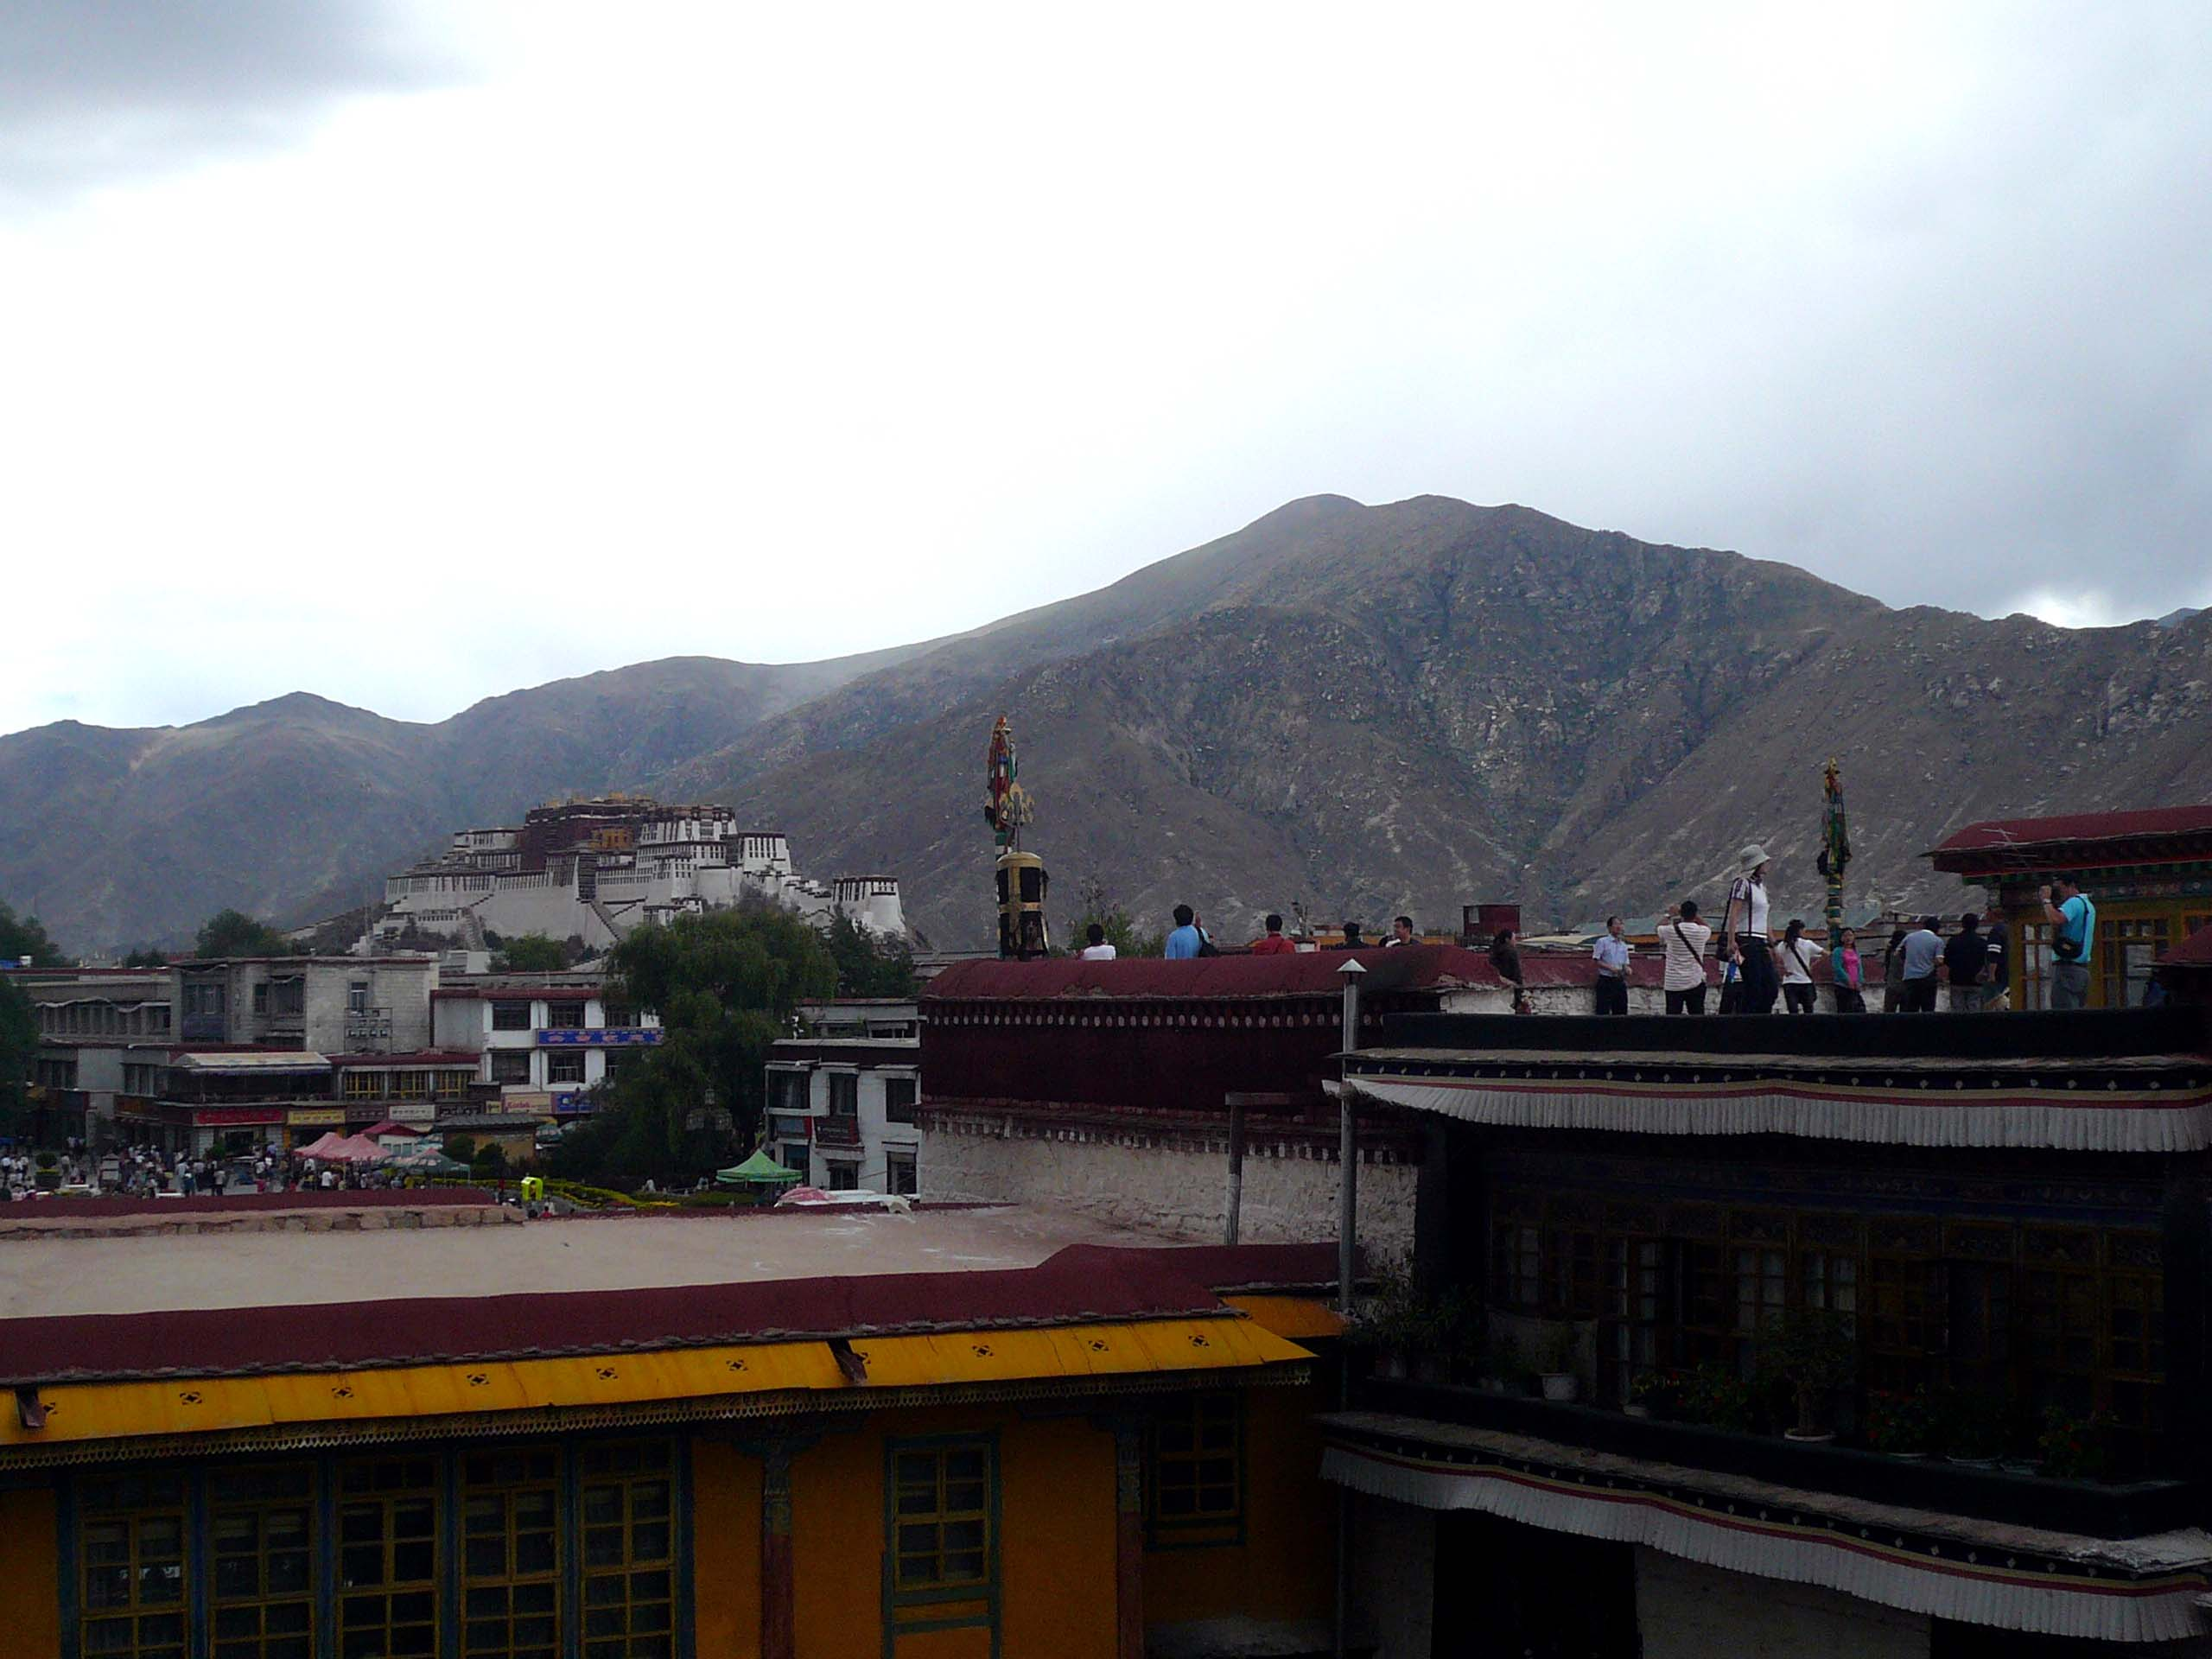 You can actually see the Potala Palace from the temple roof top platform